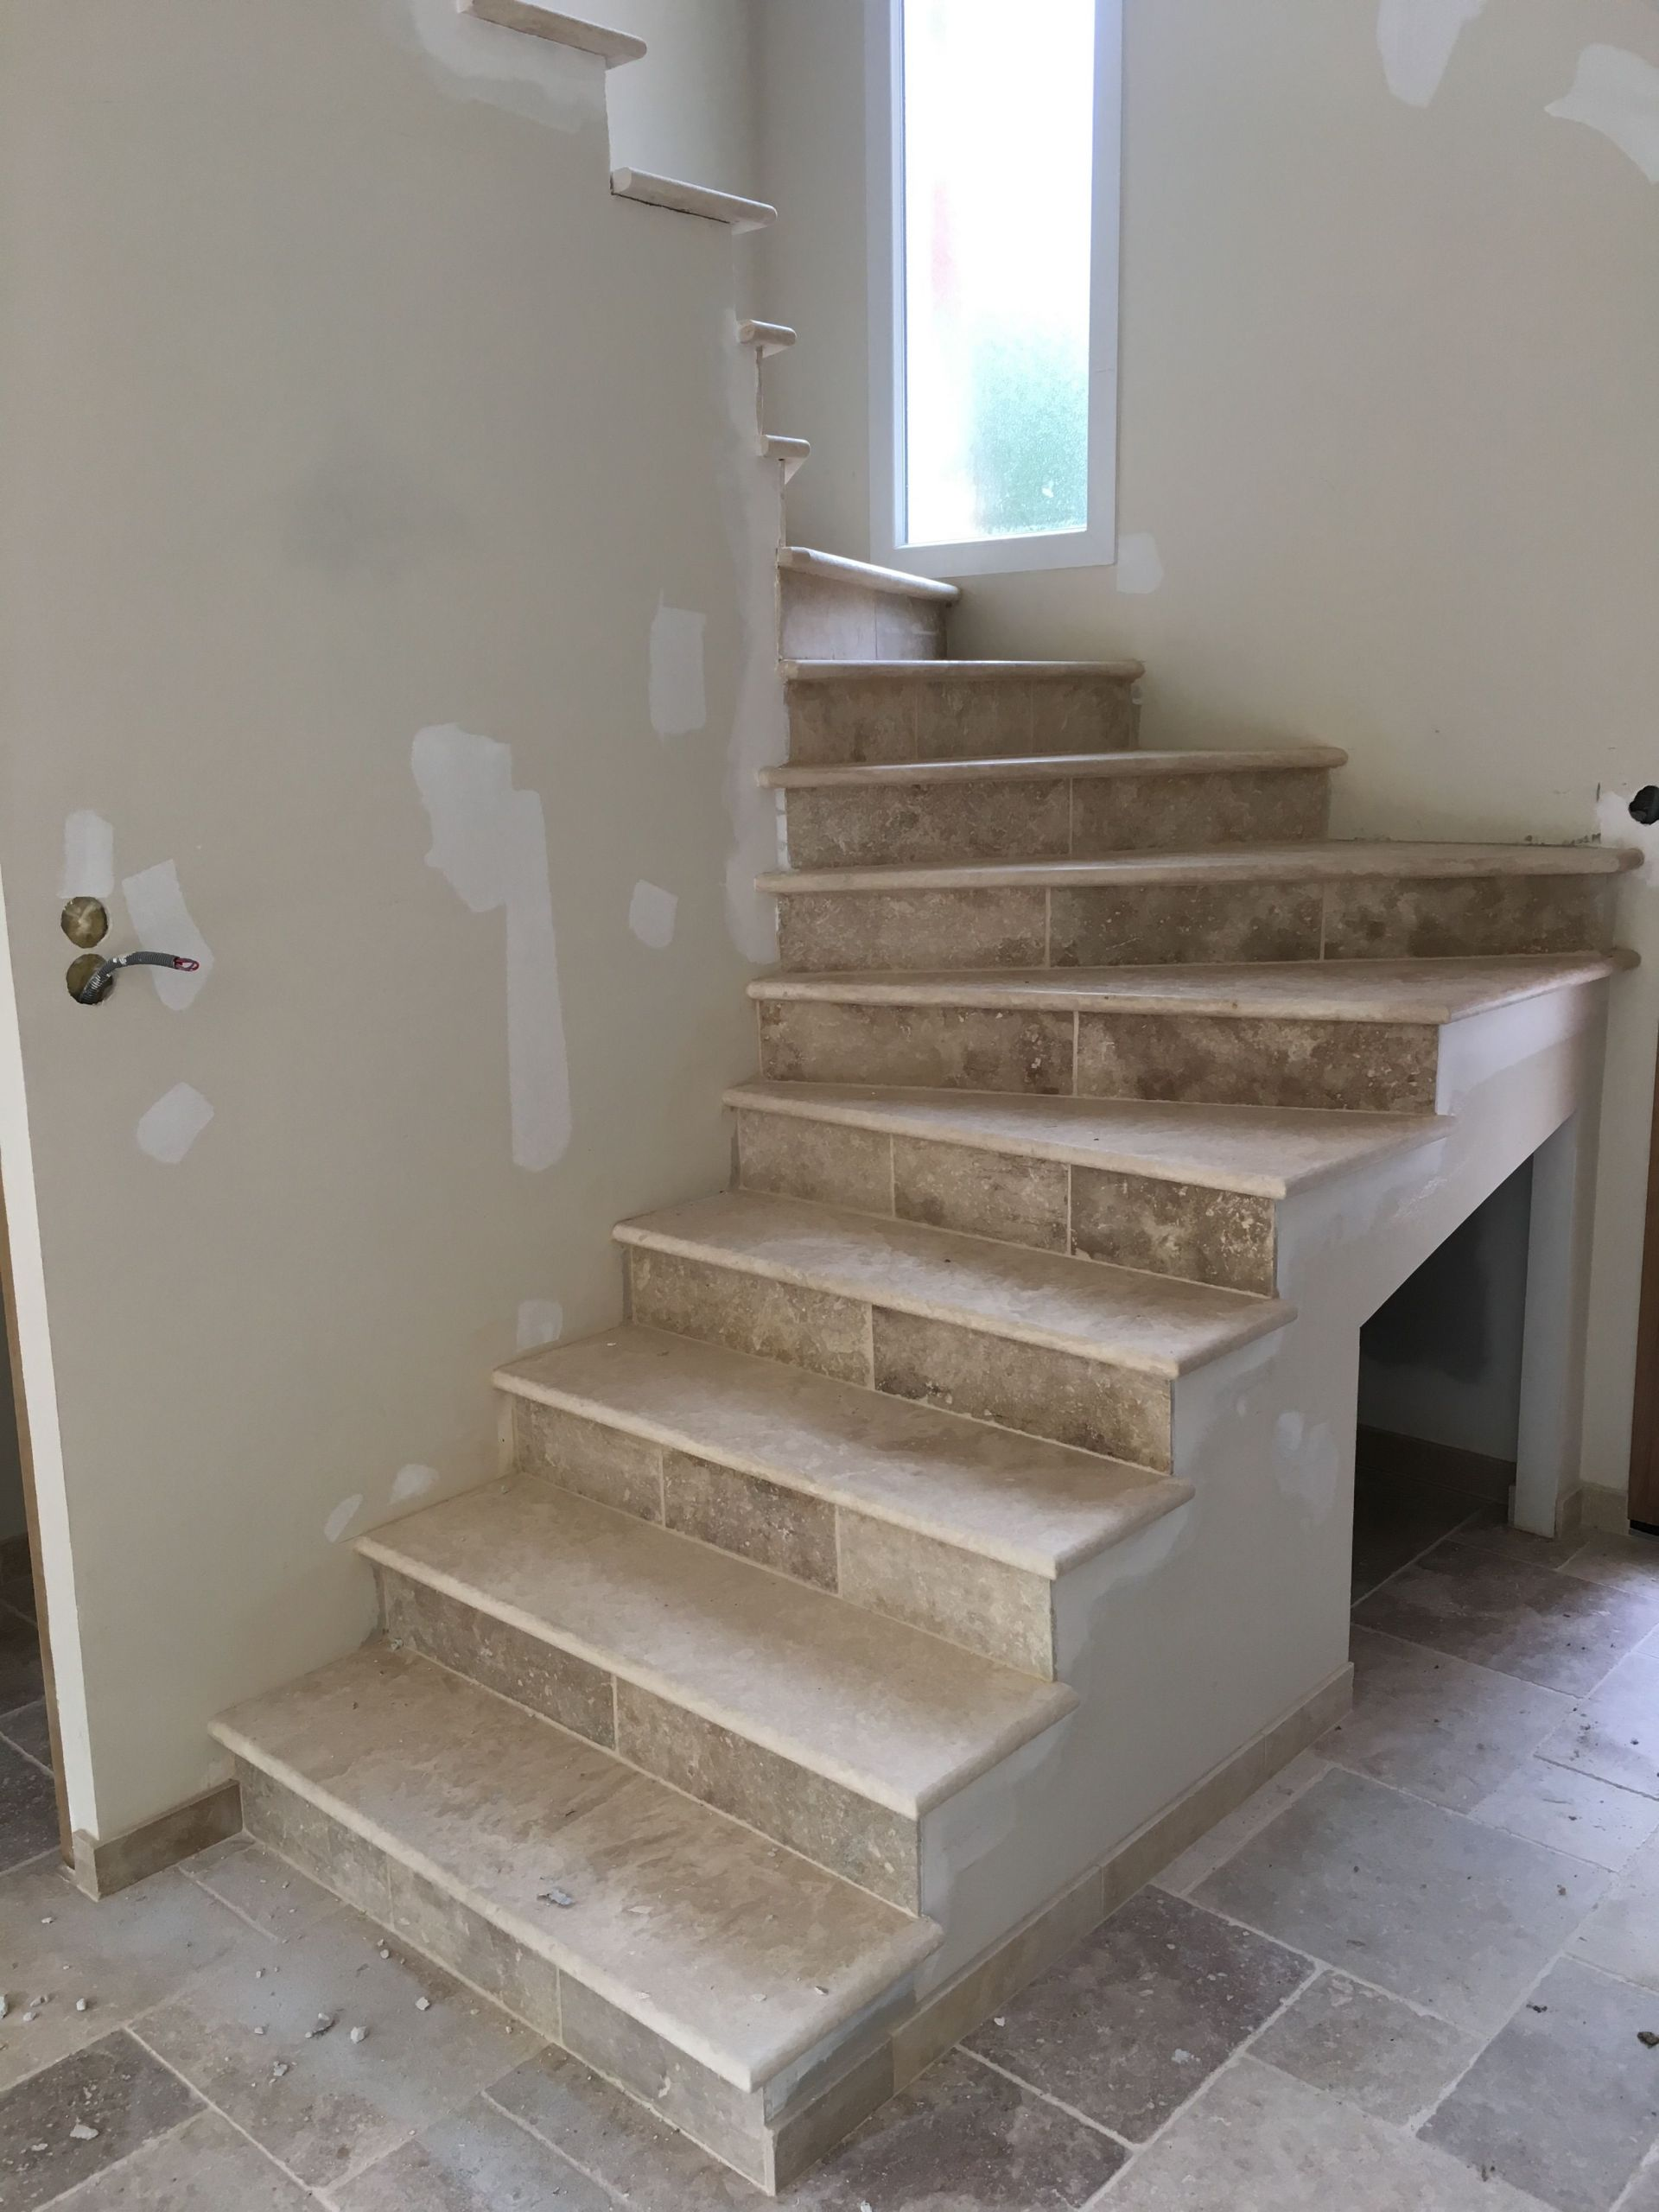 travertin escalier marche en 3cm bord arrondi sur mesure